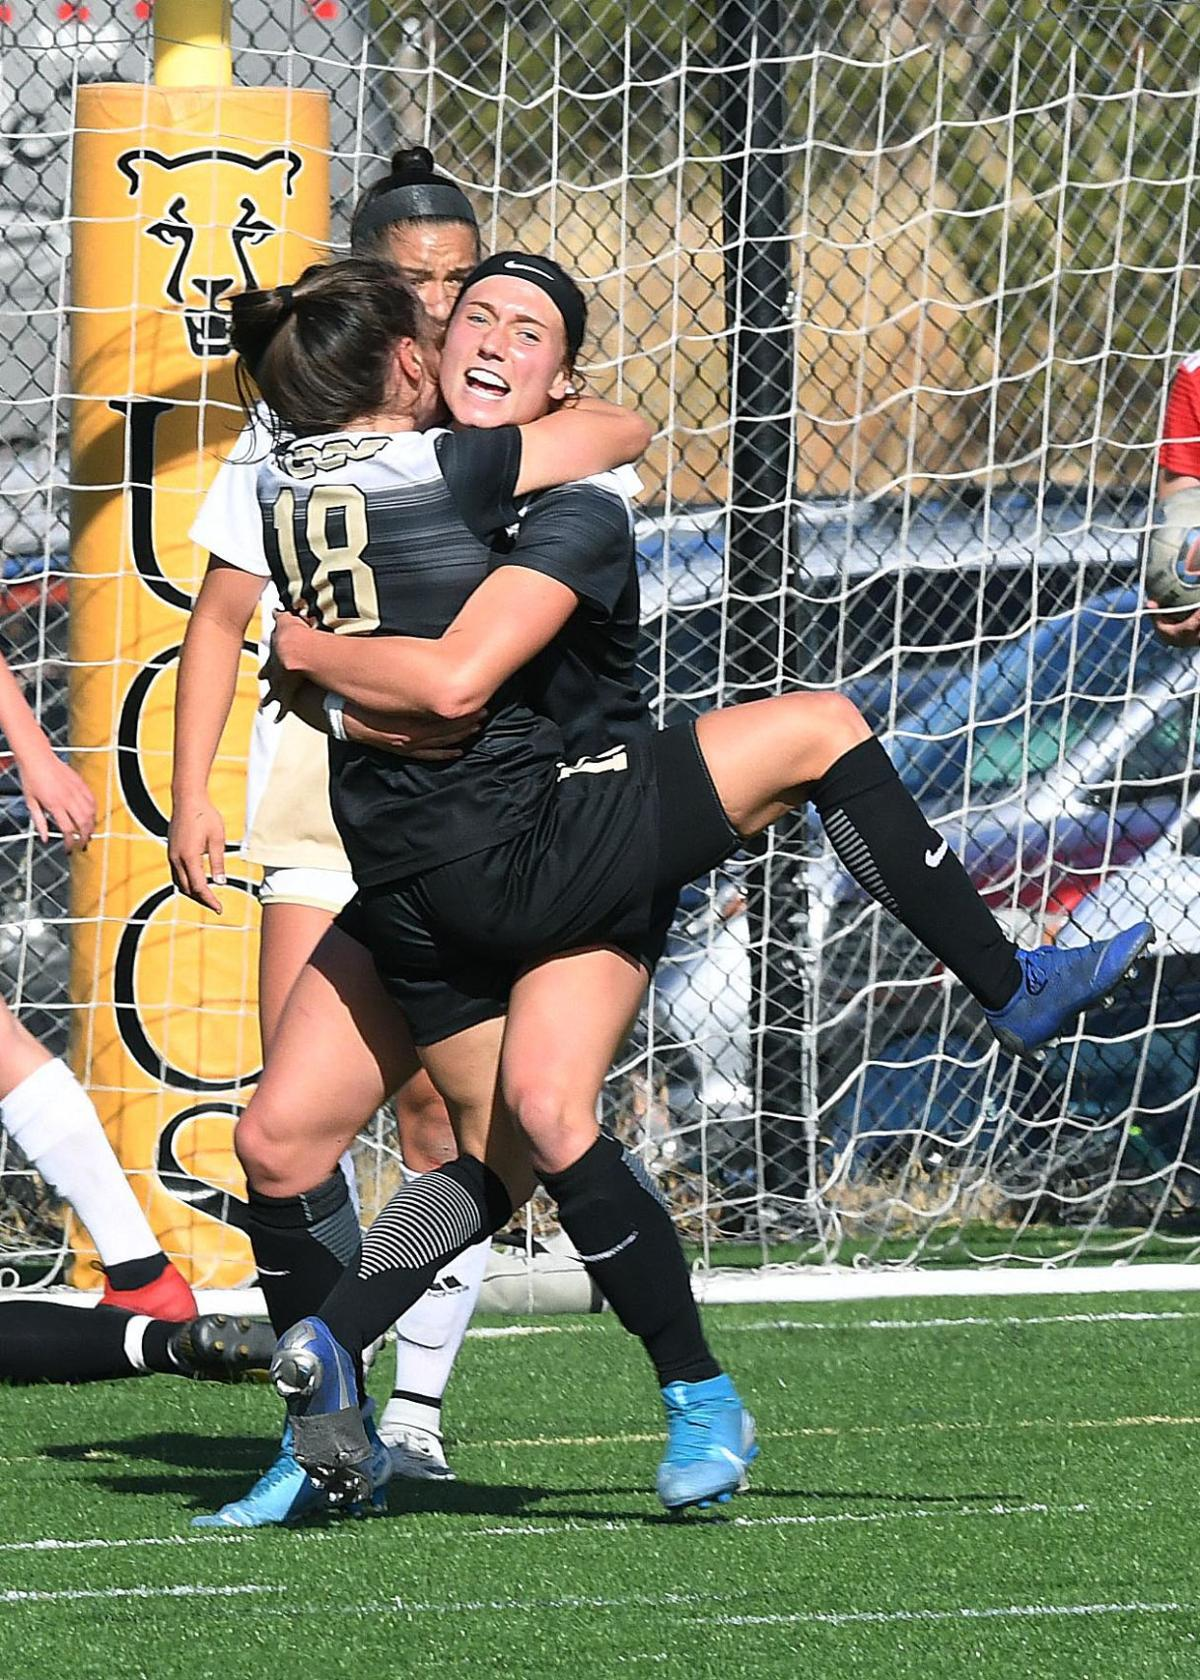 UCCS women's soccer takes down Westminster in RMAC semifinals